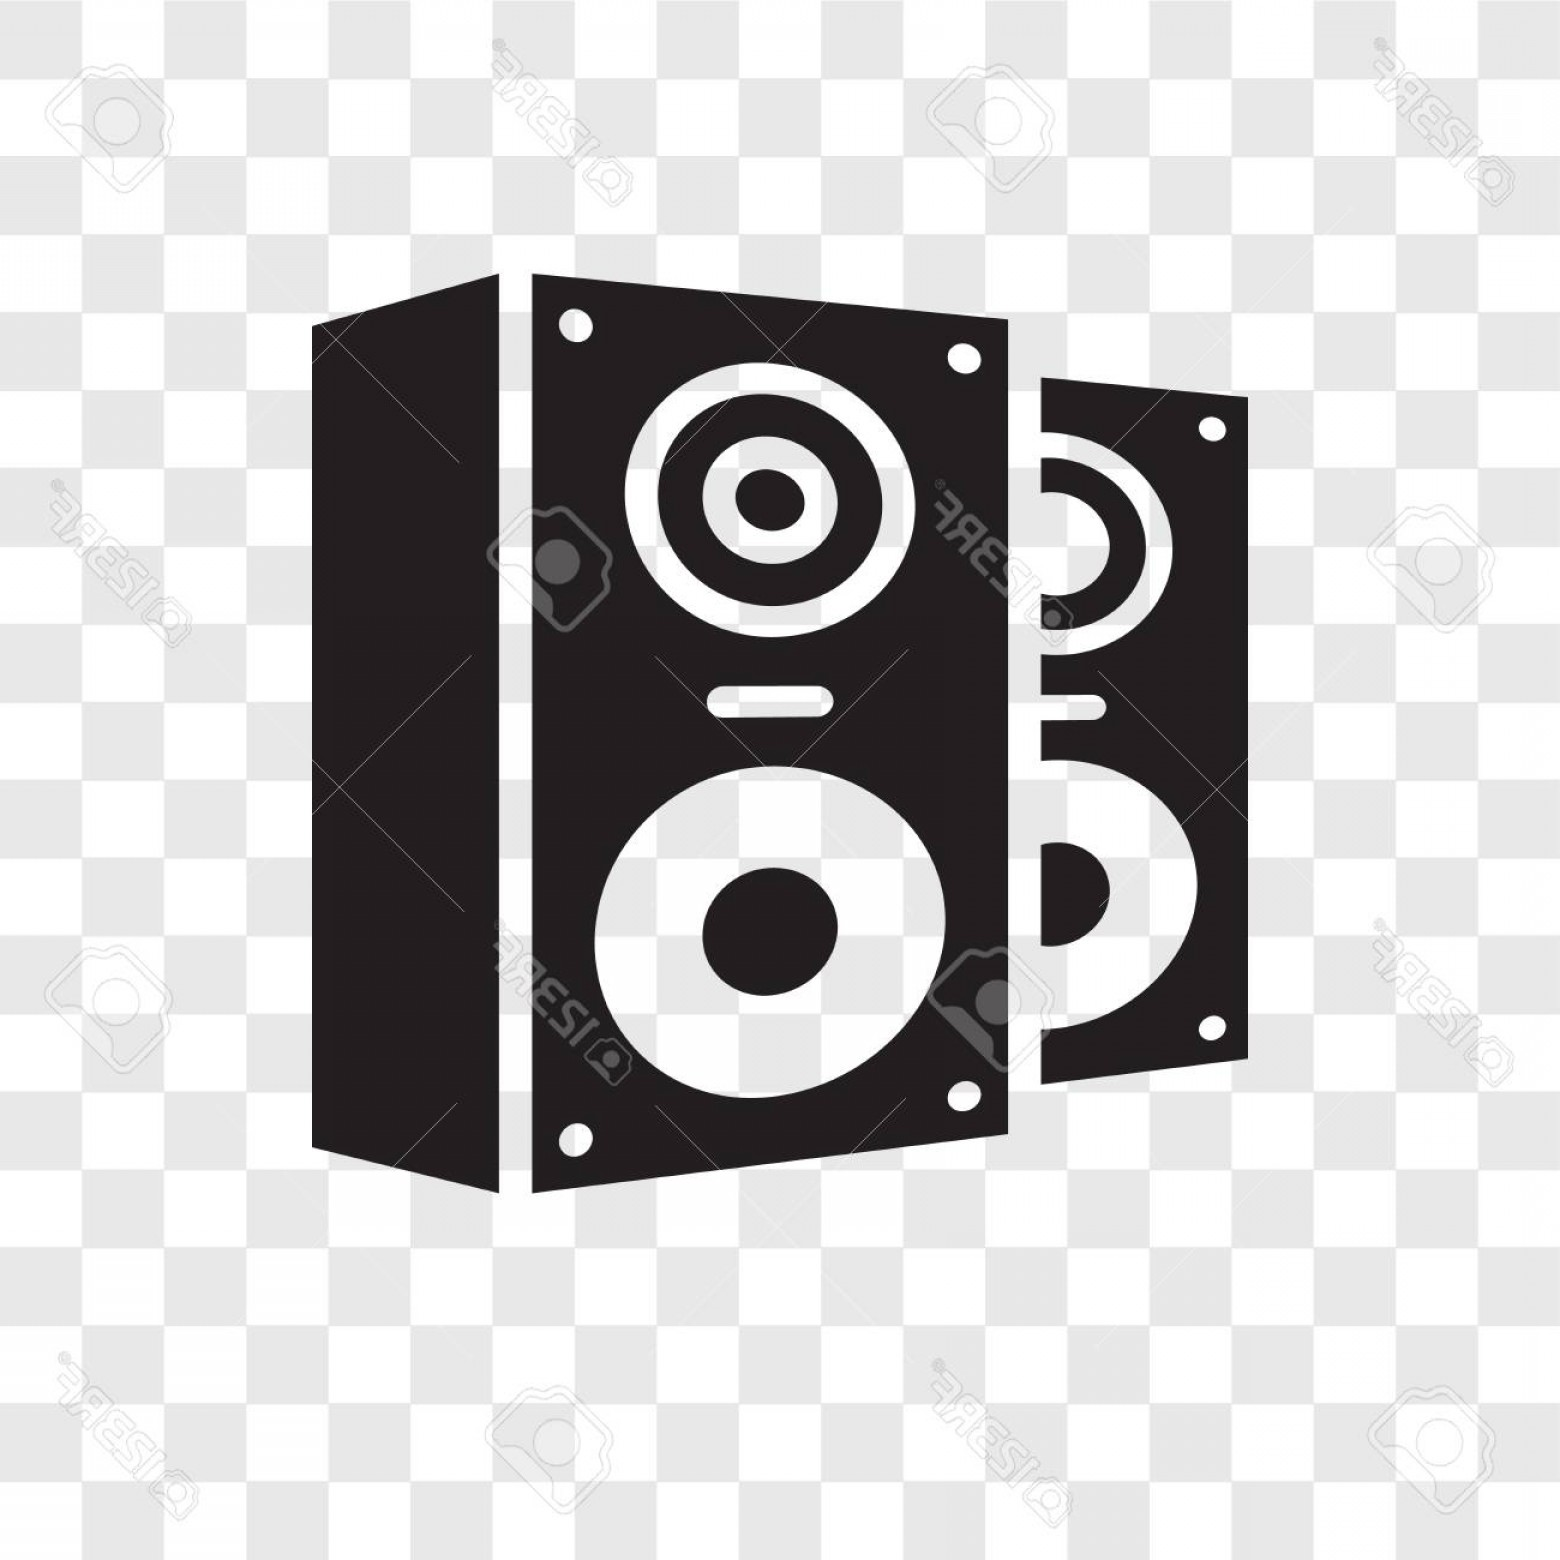 Speakers Vector Black: Photostock Vector Speakers Vector Icon Isolated On Transparent Background Speakers Transparency Logo Concept